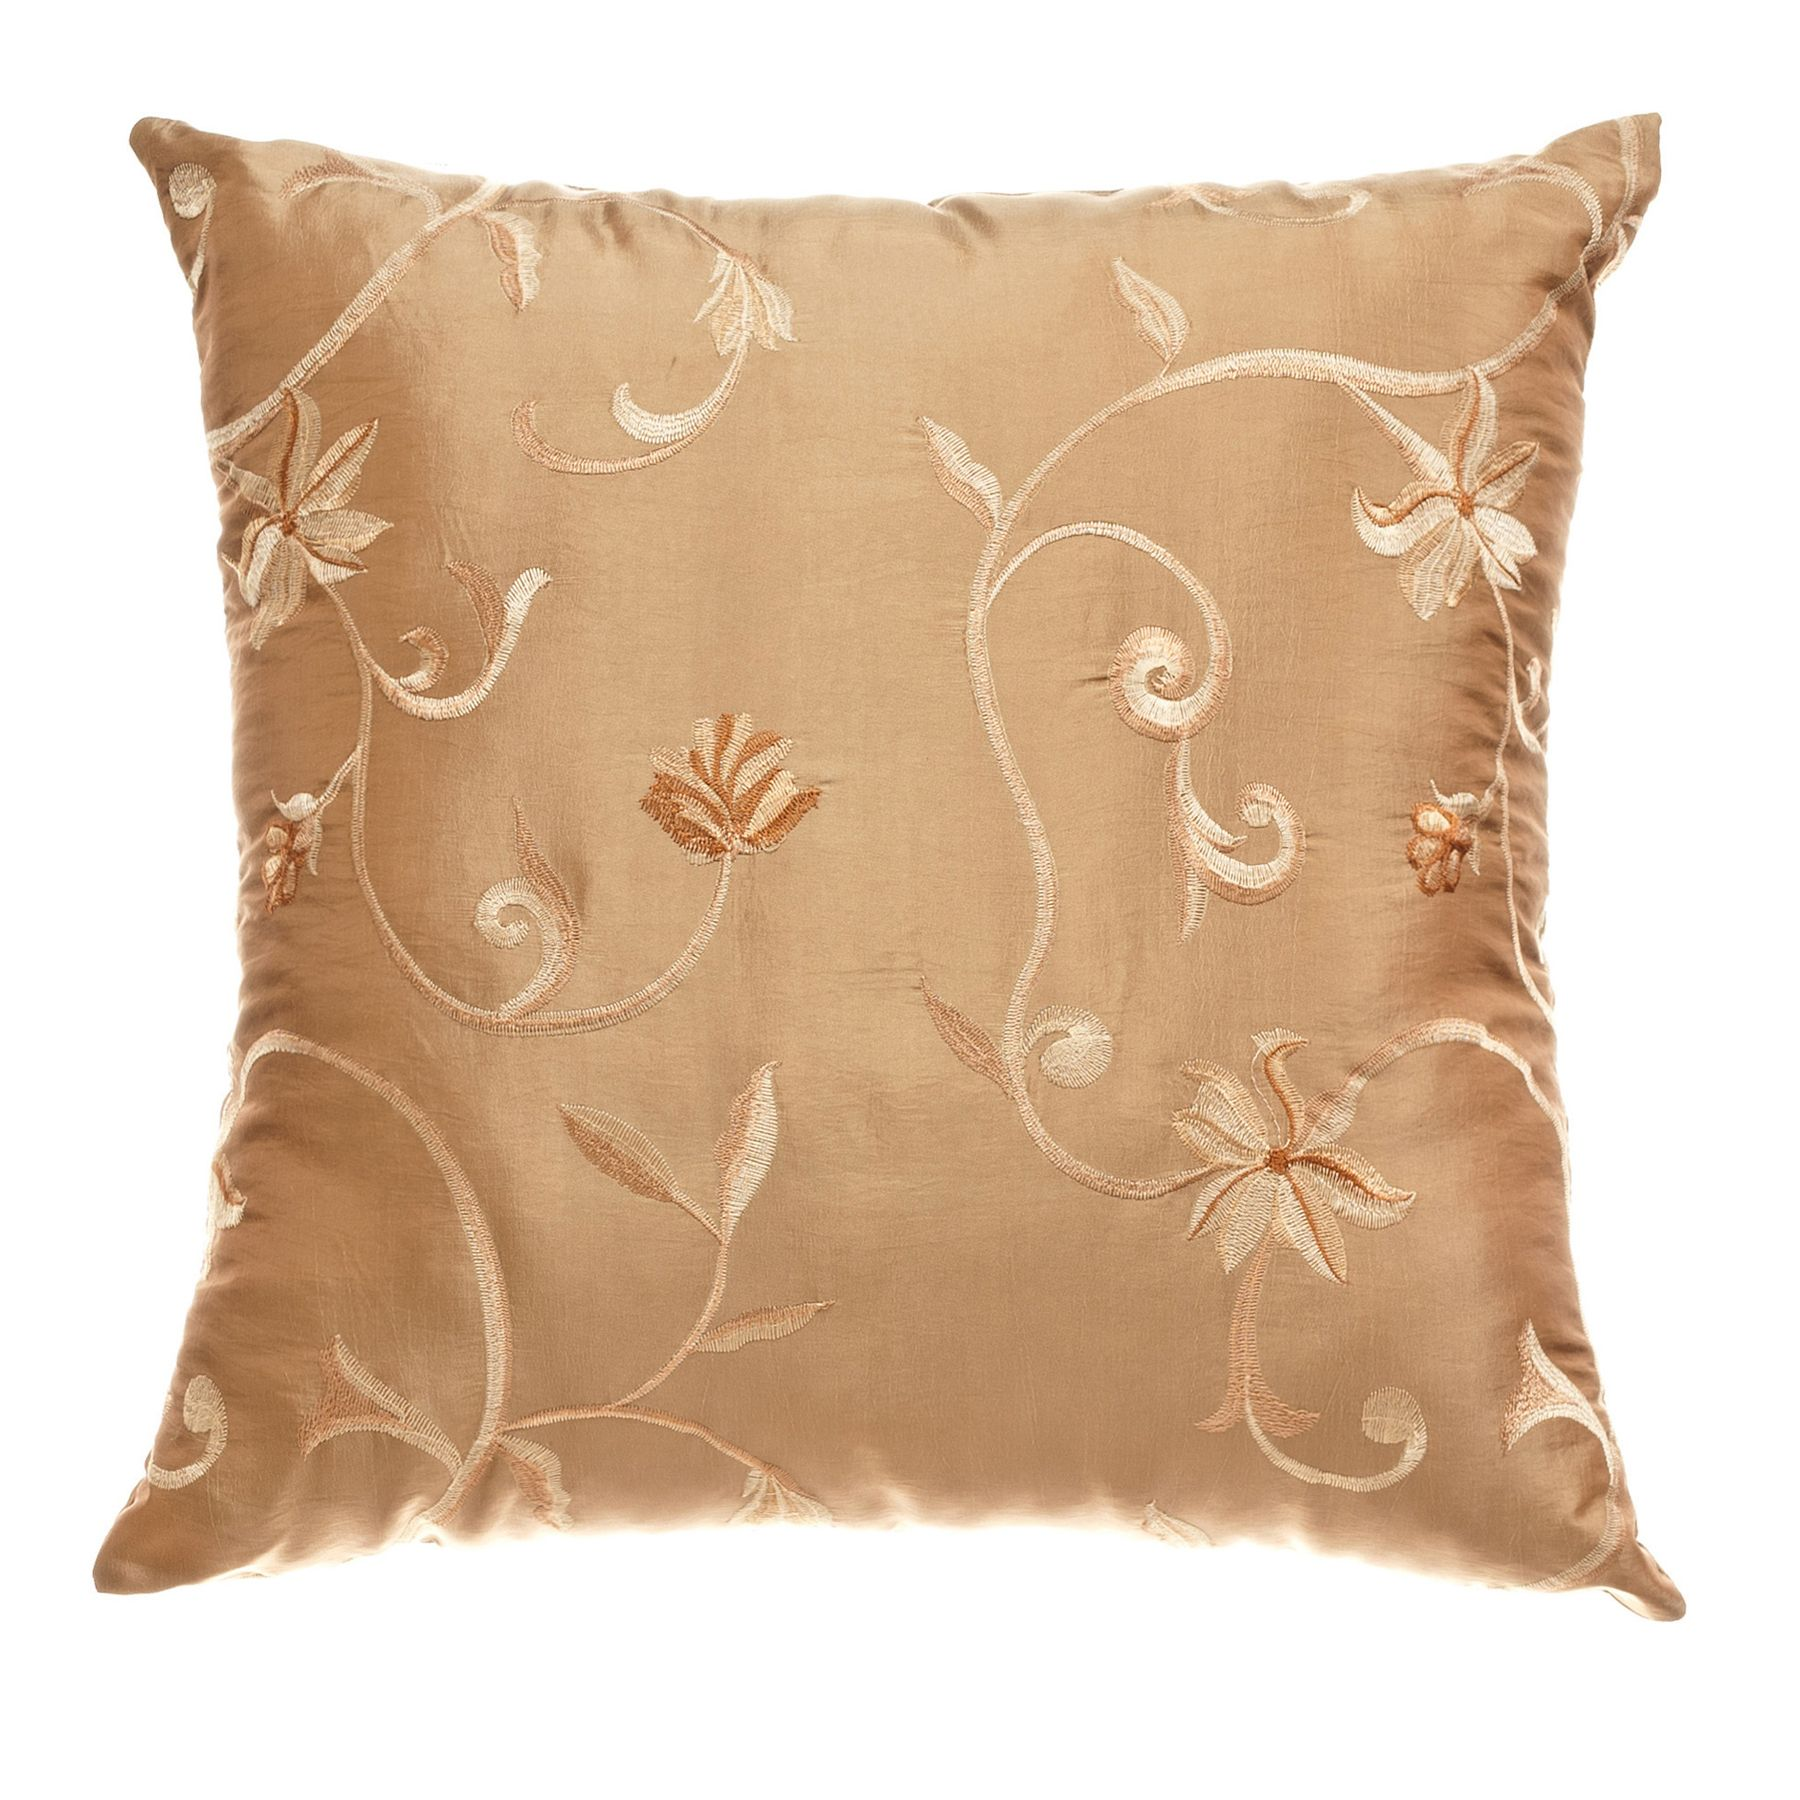 Decorative Pillows Kmart : Softline Home Fashions, Inc Cleopatra Brushed Gold 18x18 Decorative Pillow